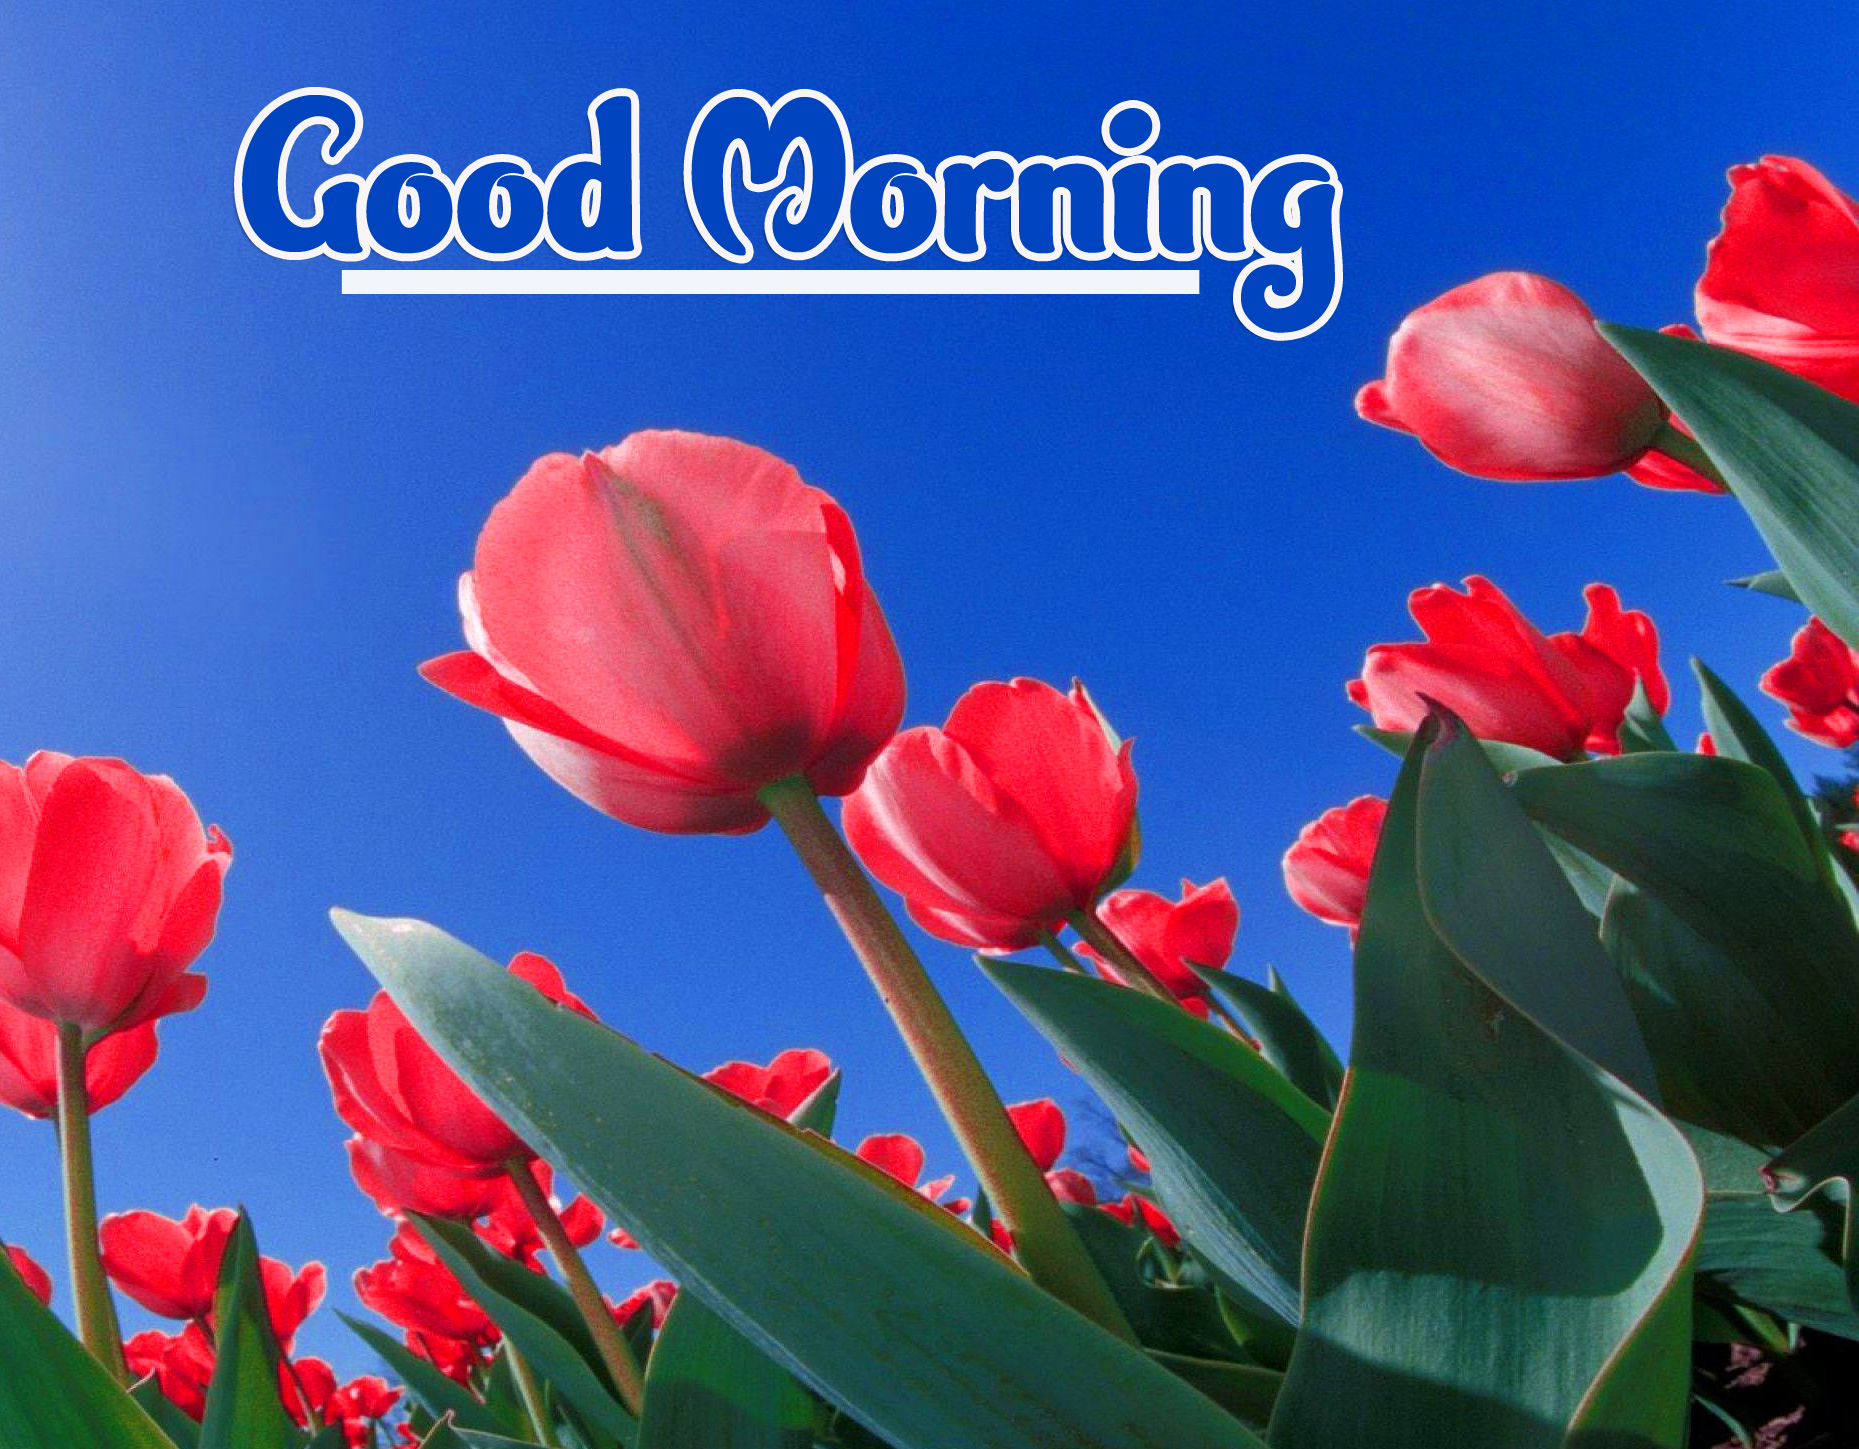 Good Morning Wallpaper Pics Download